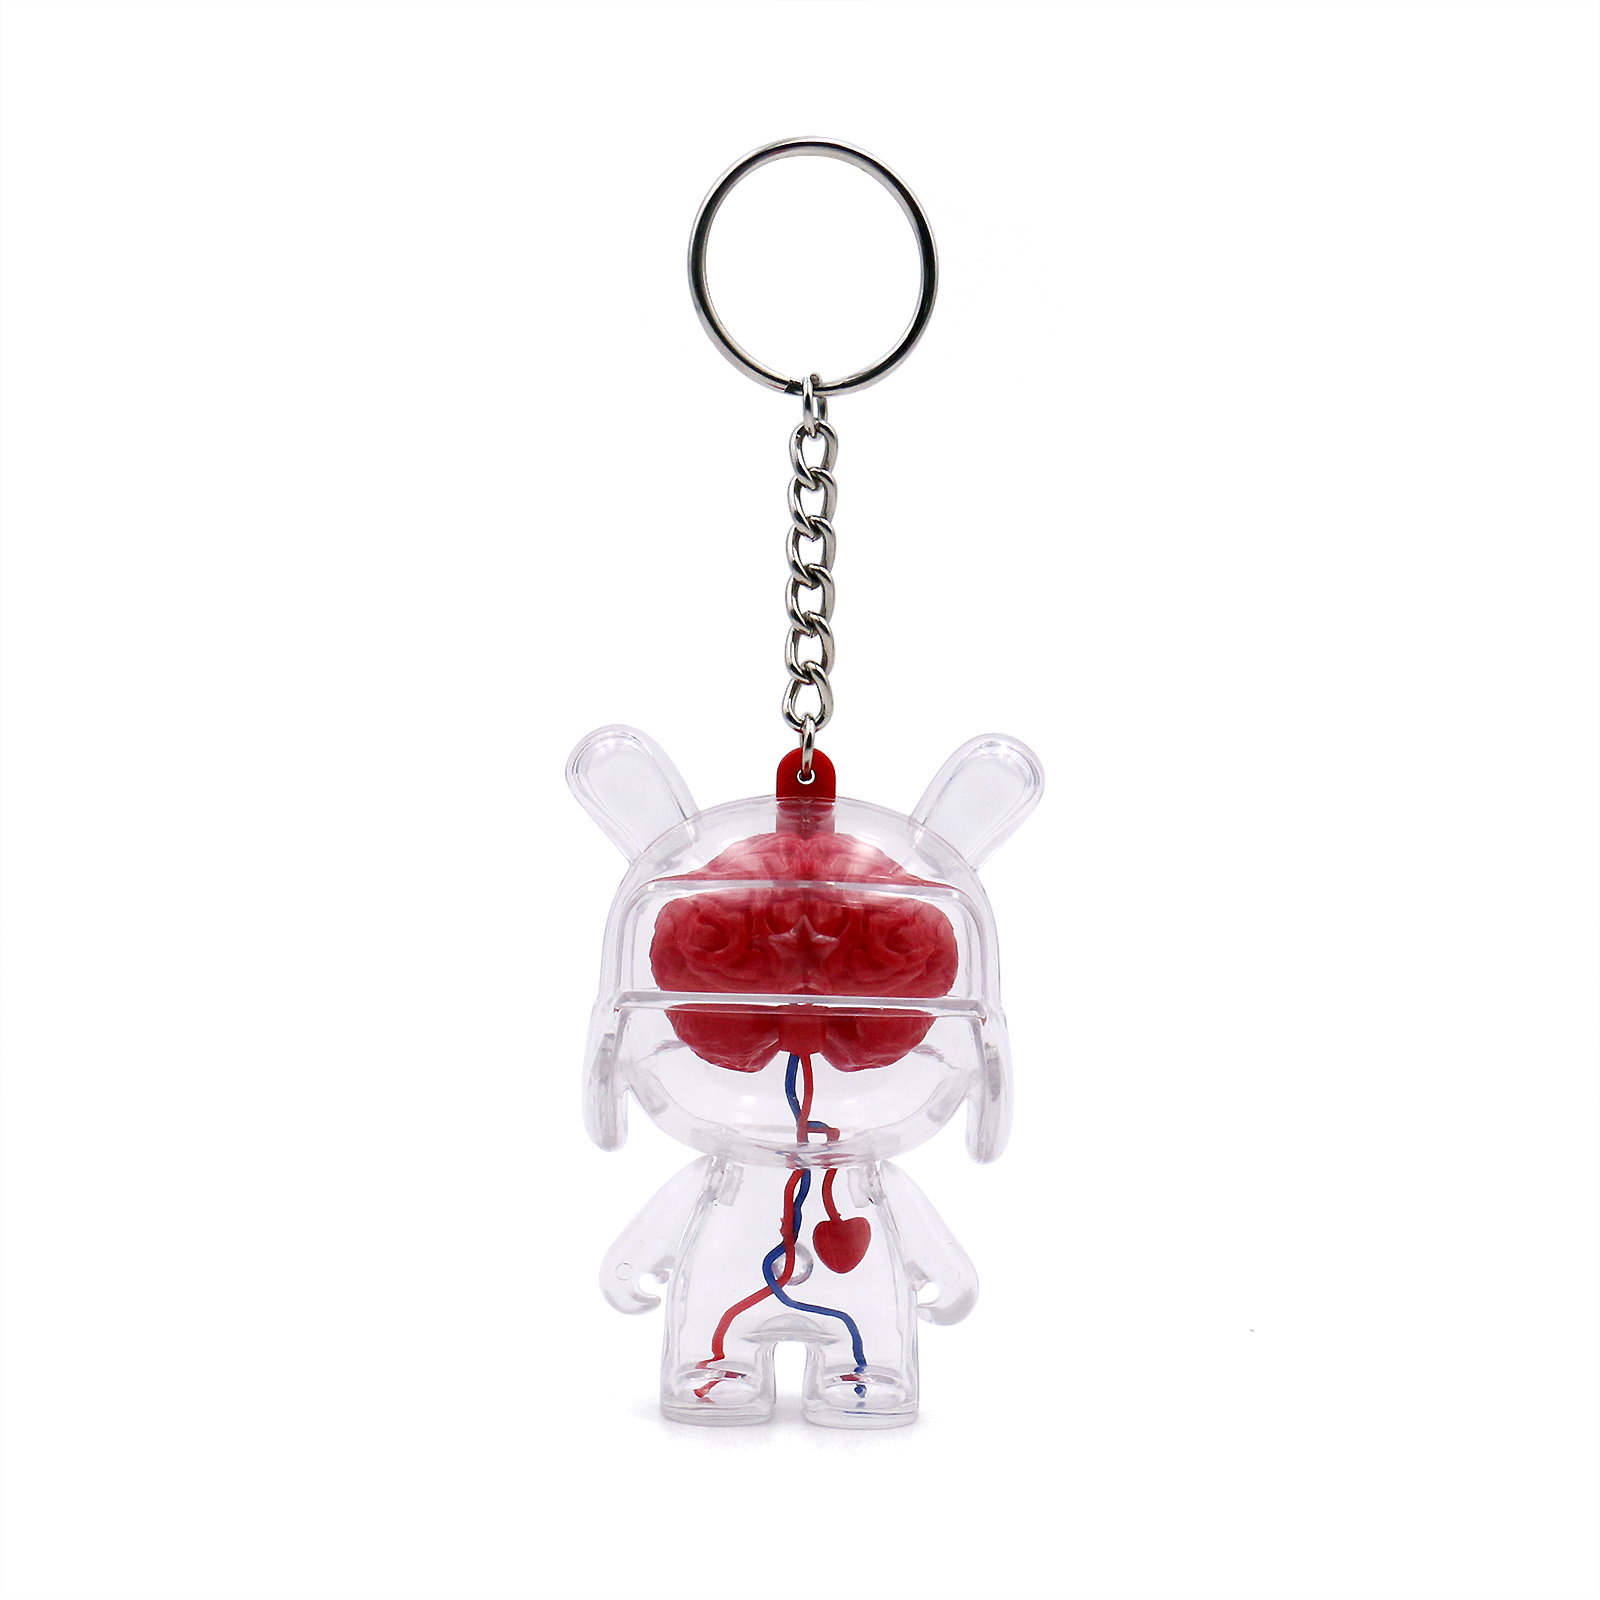 Millet millet official flagship store authentic super brain rabbit keychain bag ornaments car key chain lanyards ornaments